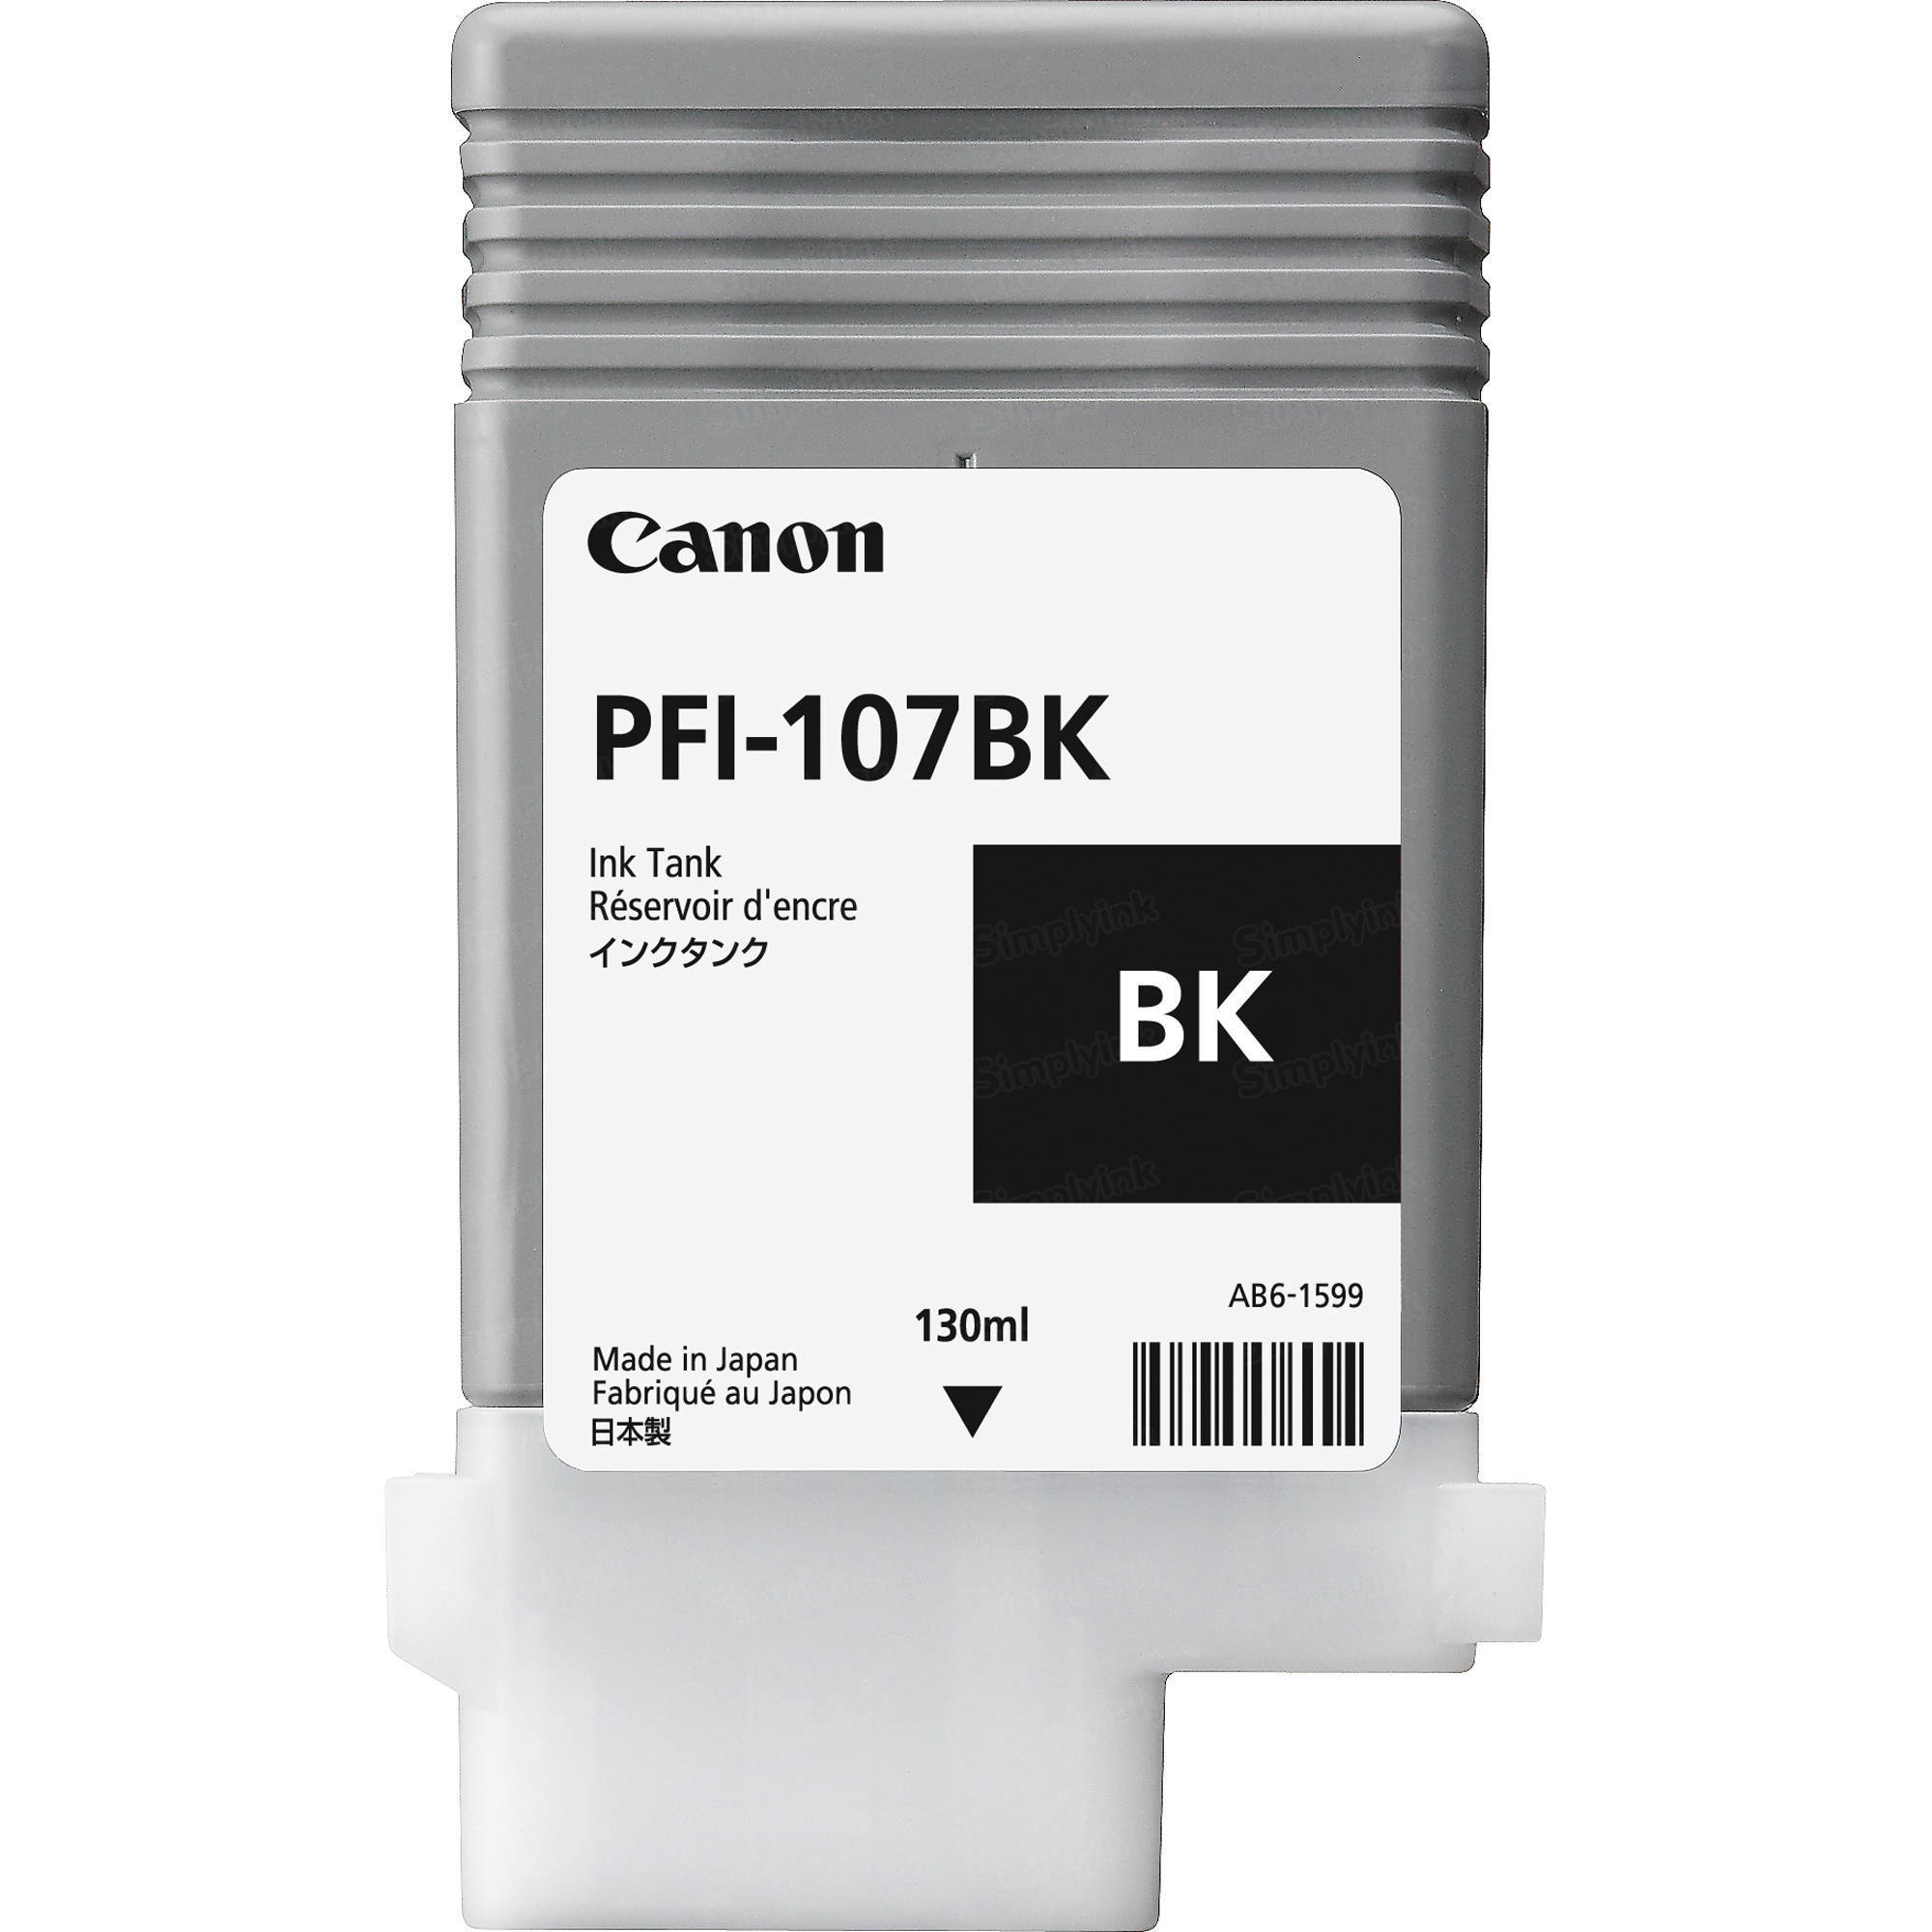 Canon PFI-107BK Black Ink Cartridge, OEM